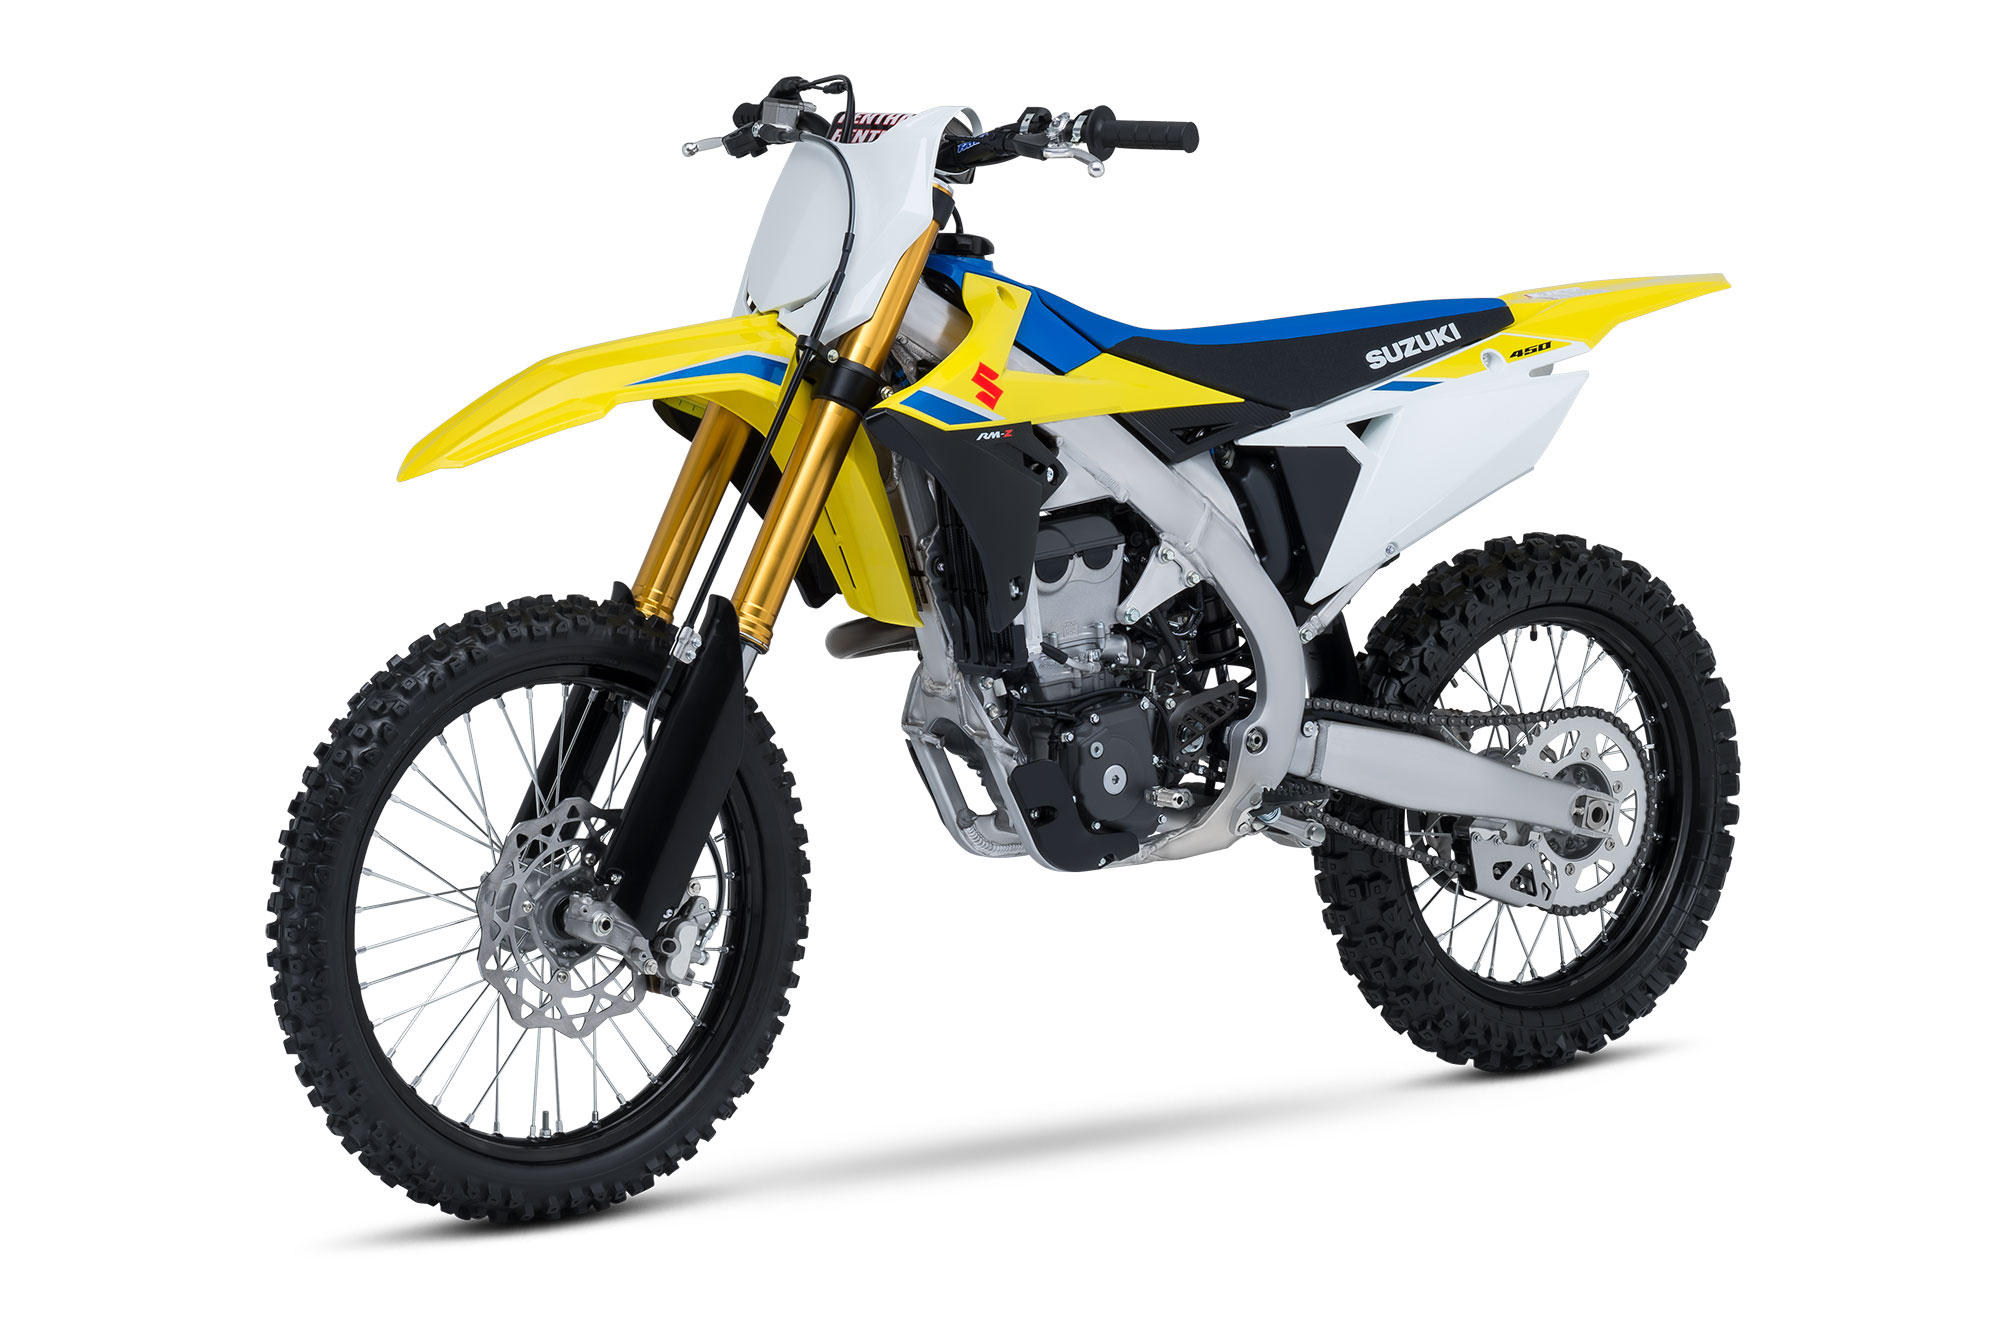 Suzuki's new bodywork is sleeker, narrower and keeps it's yellow and blue heritage for 2018.